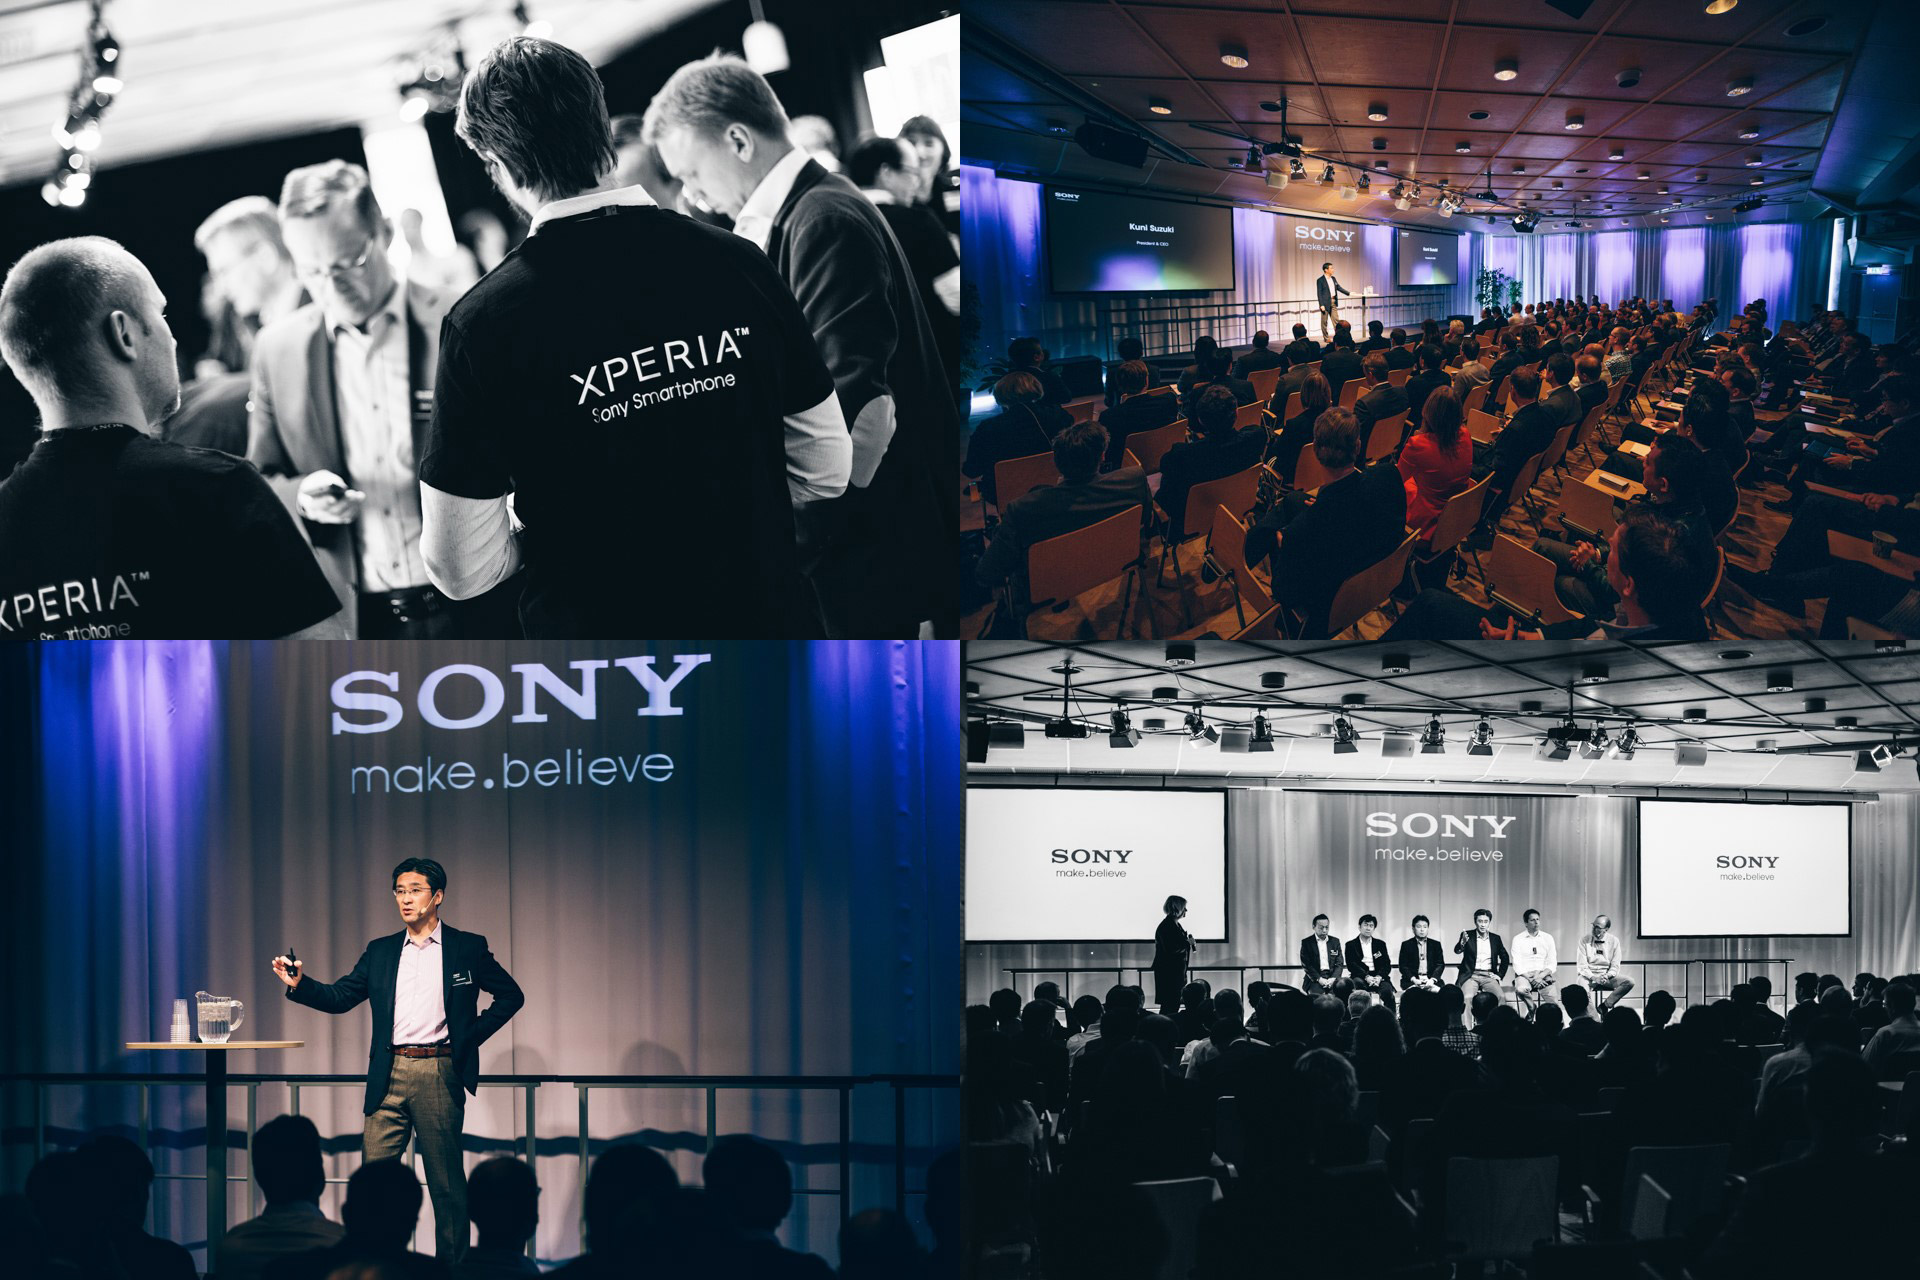 #SONY, Brand Experience, Branding, Conferences, Activities, Events